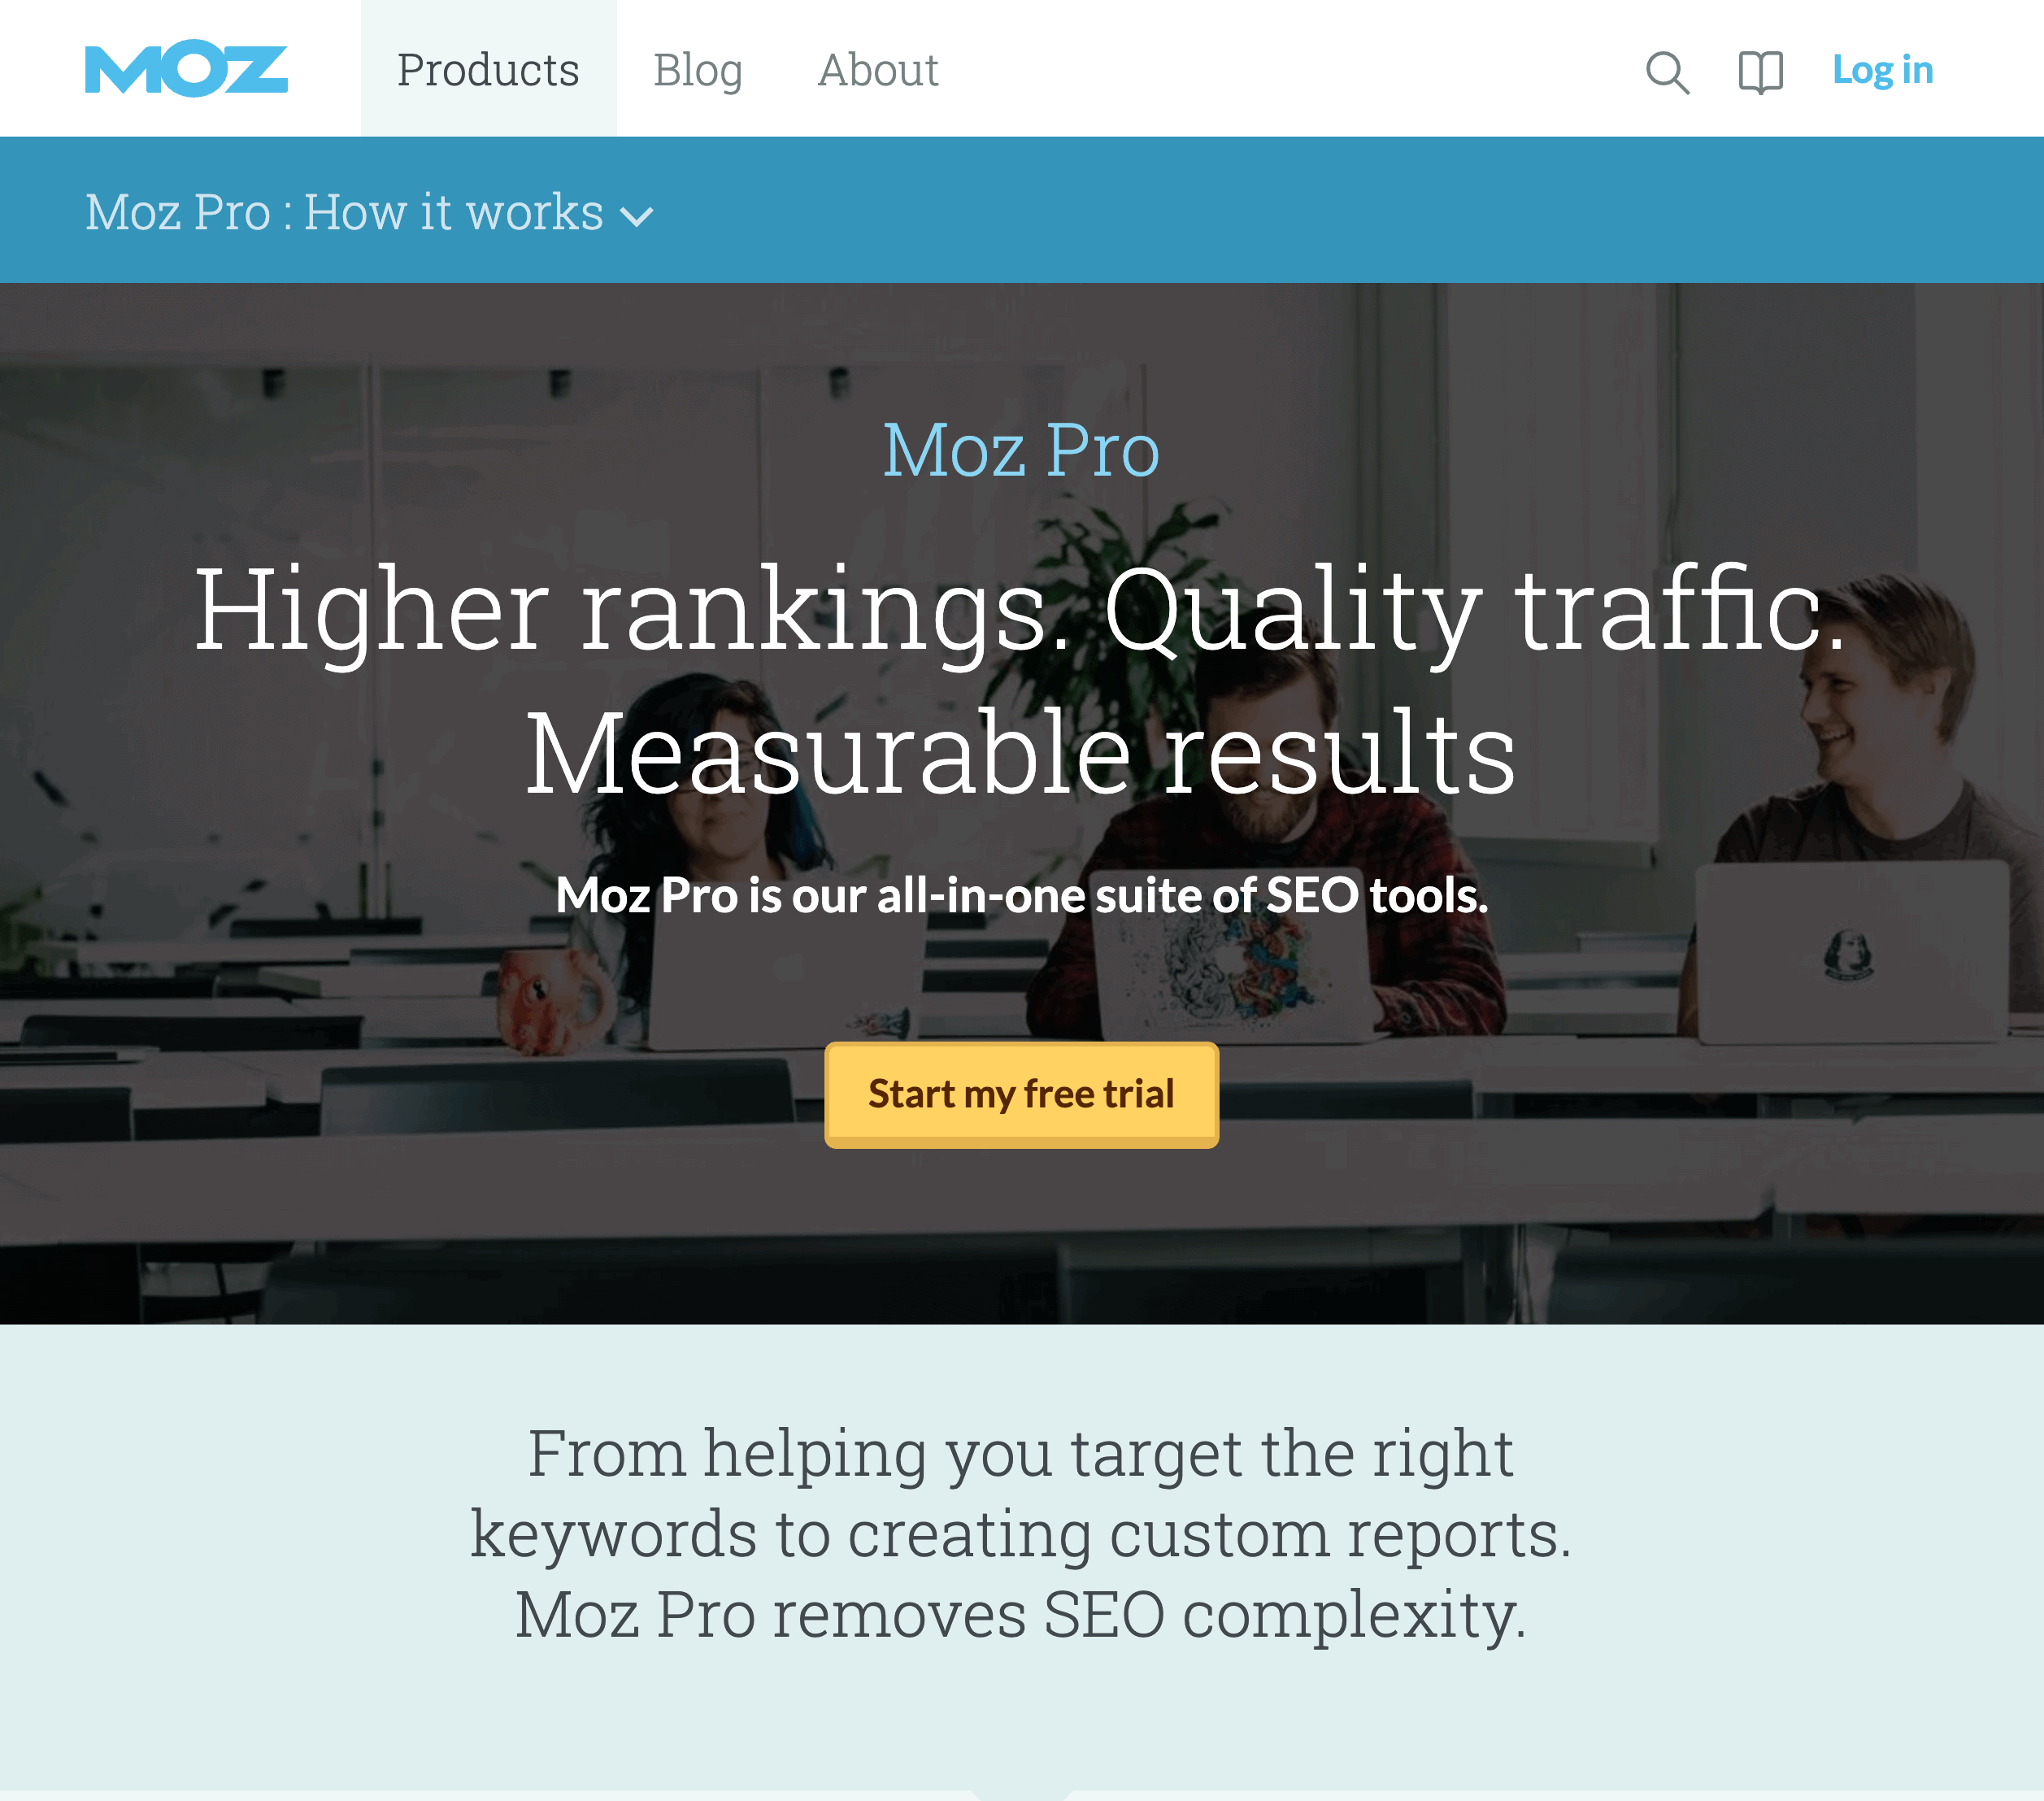 MOZ Pro – Product Page